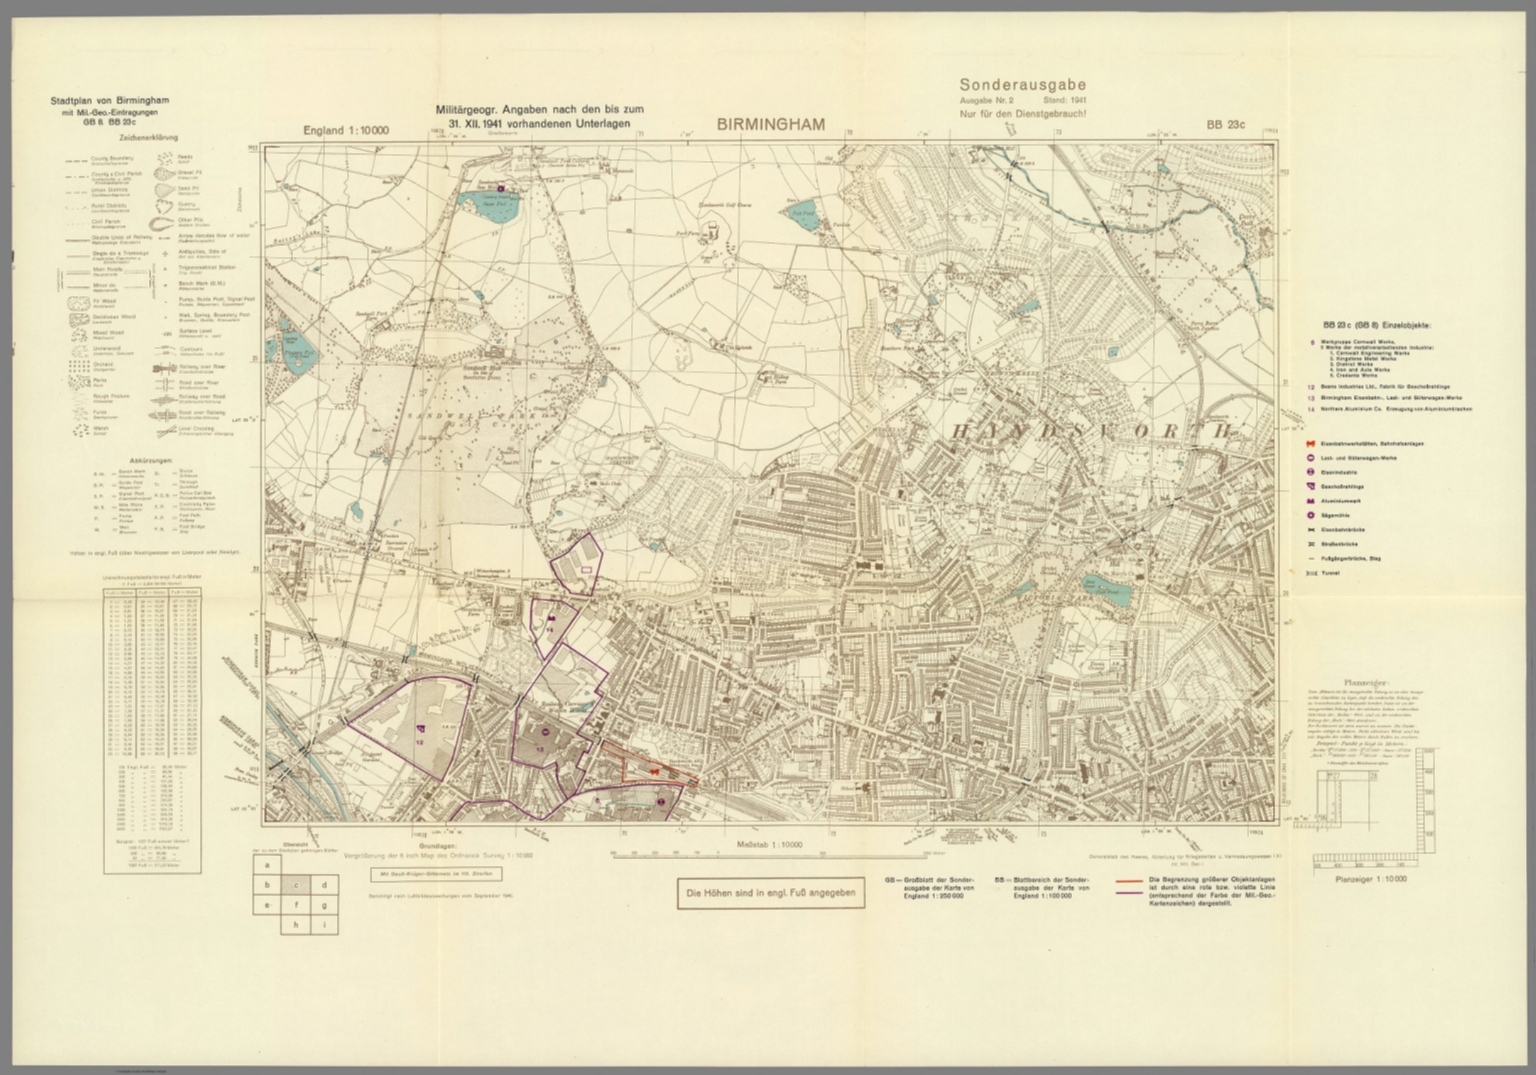 Birmingham Karte England.Street Map Of Birmingham England With Military Geographic